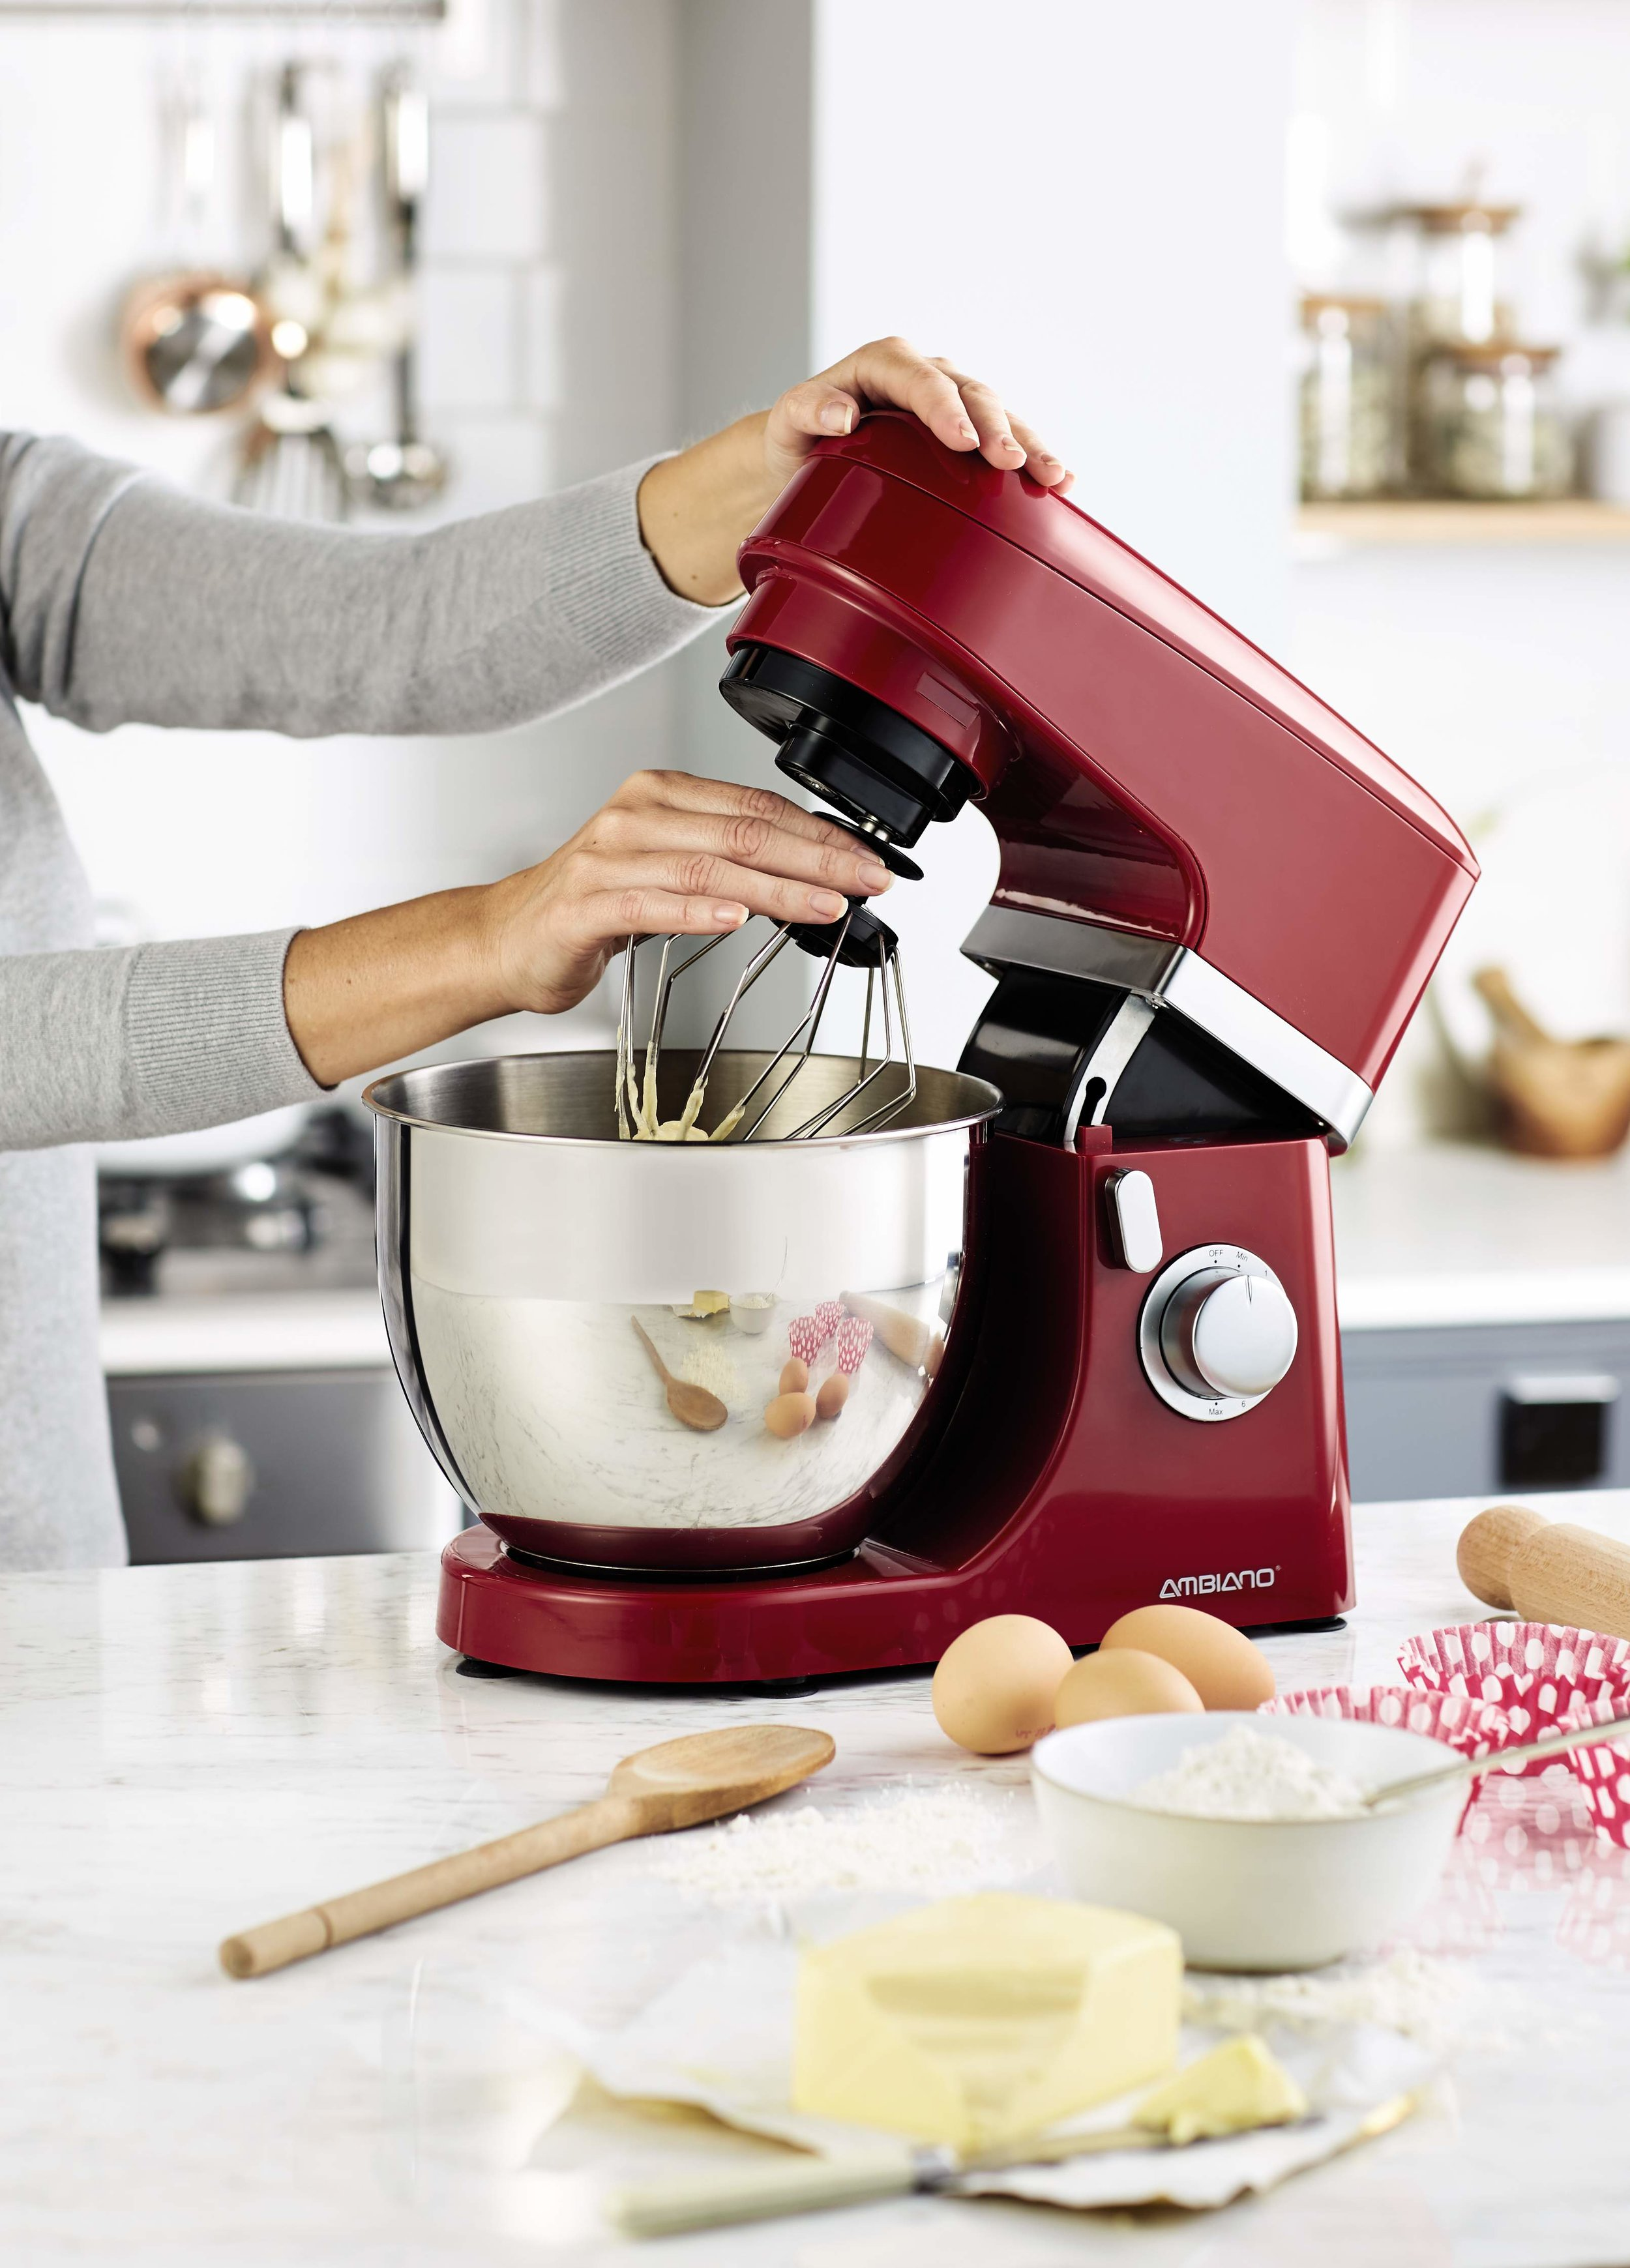 - Thanks to our favourite supermarket Aldi, you won't have to break the bank to be in with a chance of becoming star baker. The company has launched its very own stand mixer for 1/10th of the cost. That's right, bake off glory can be yours for the bargain price of £49.99. Available in red and cream, this mixer is perfect for any novice bakers out there who want to bring a slice of the Great British Bake Off into their homes.